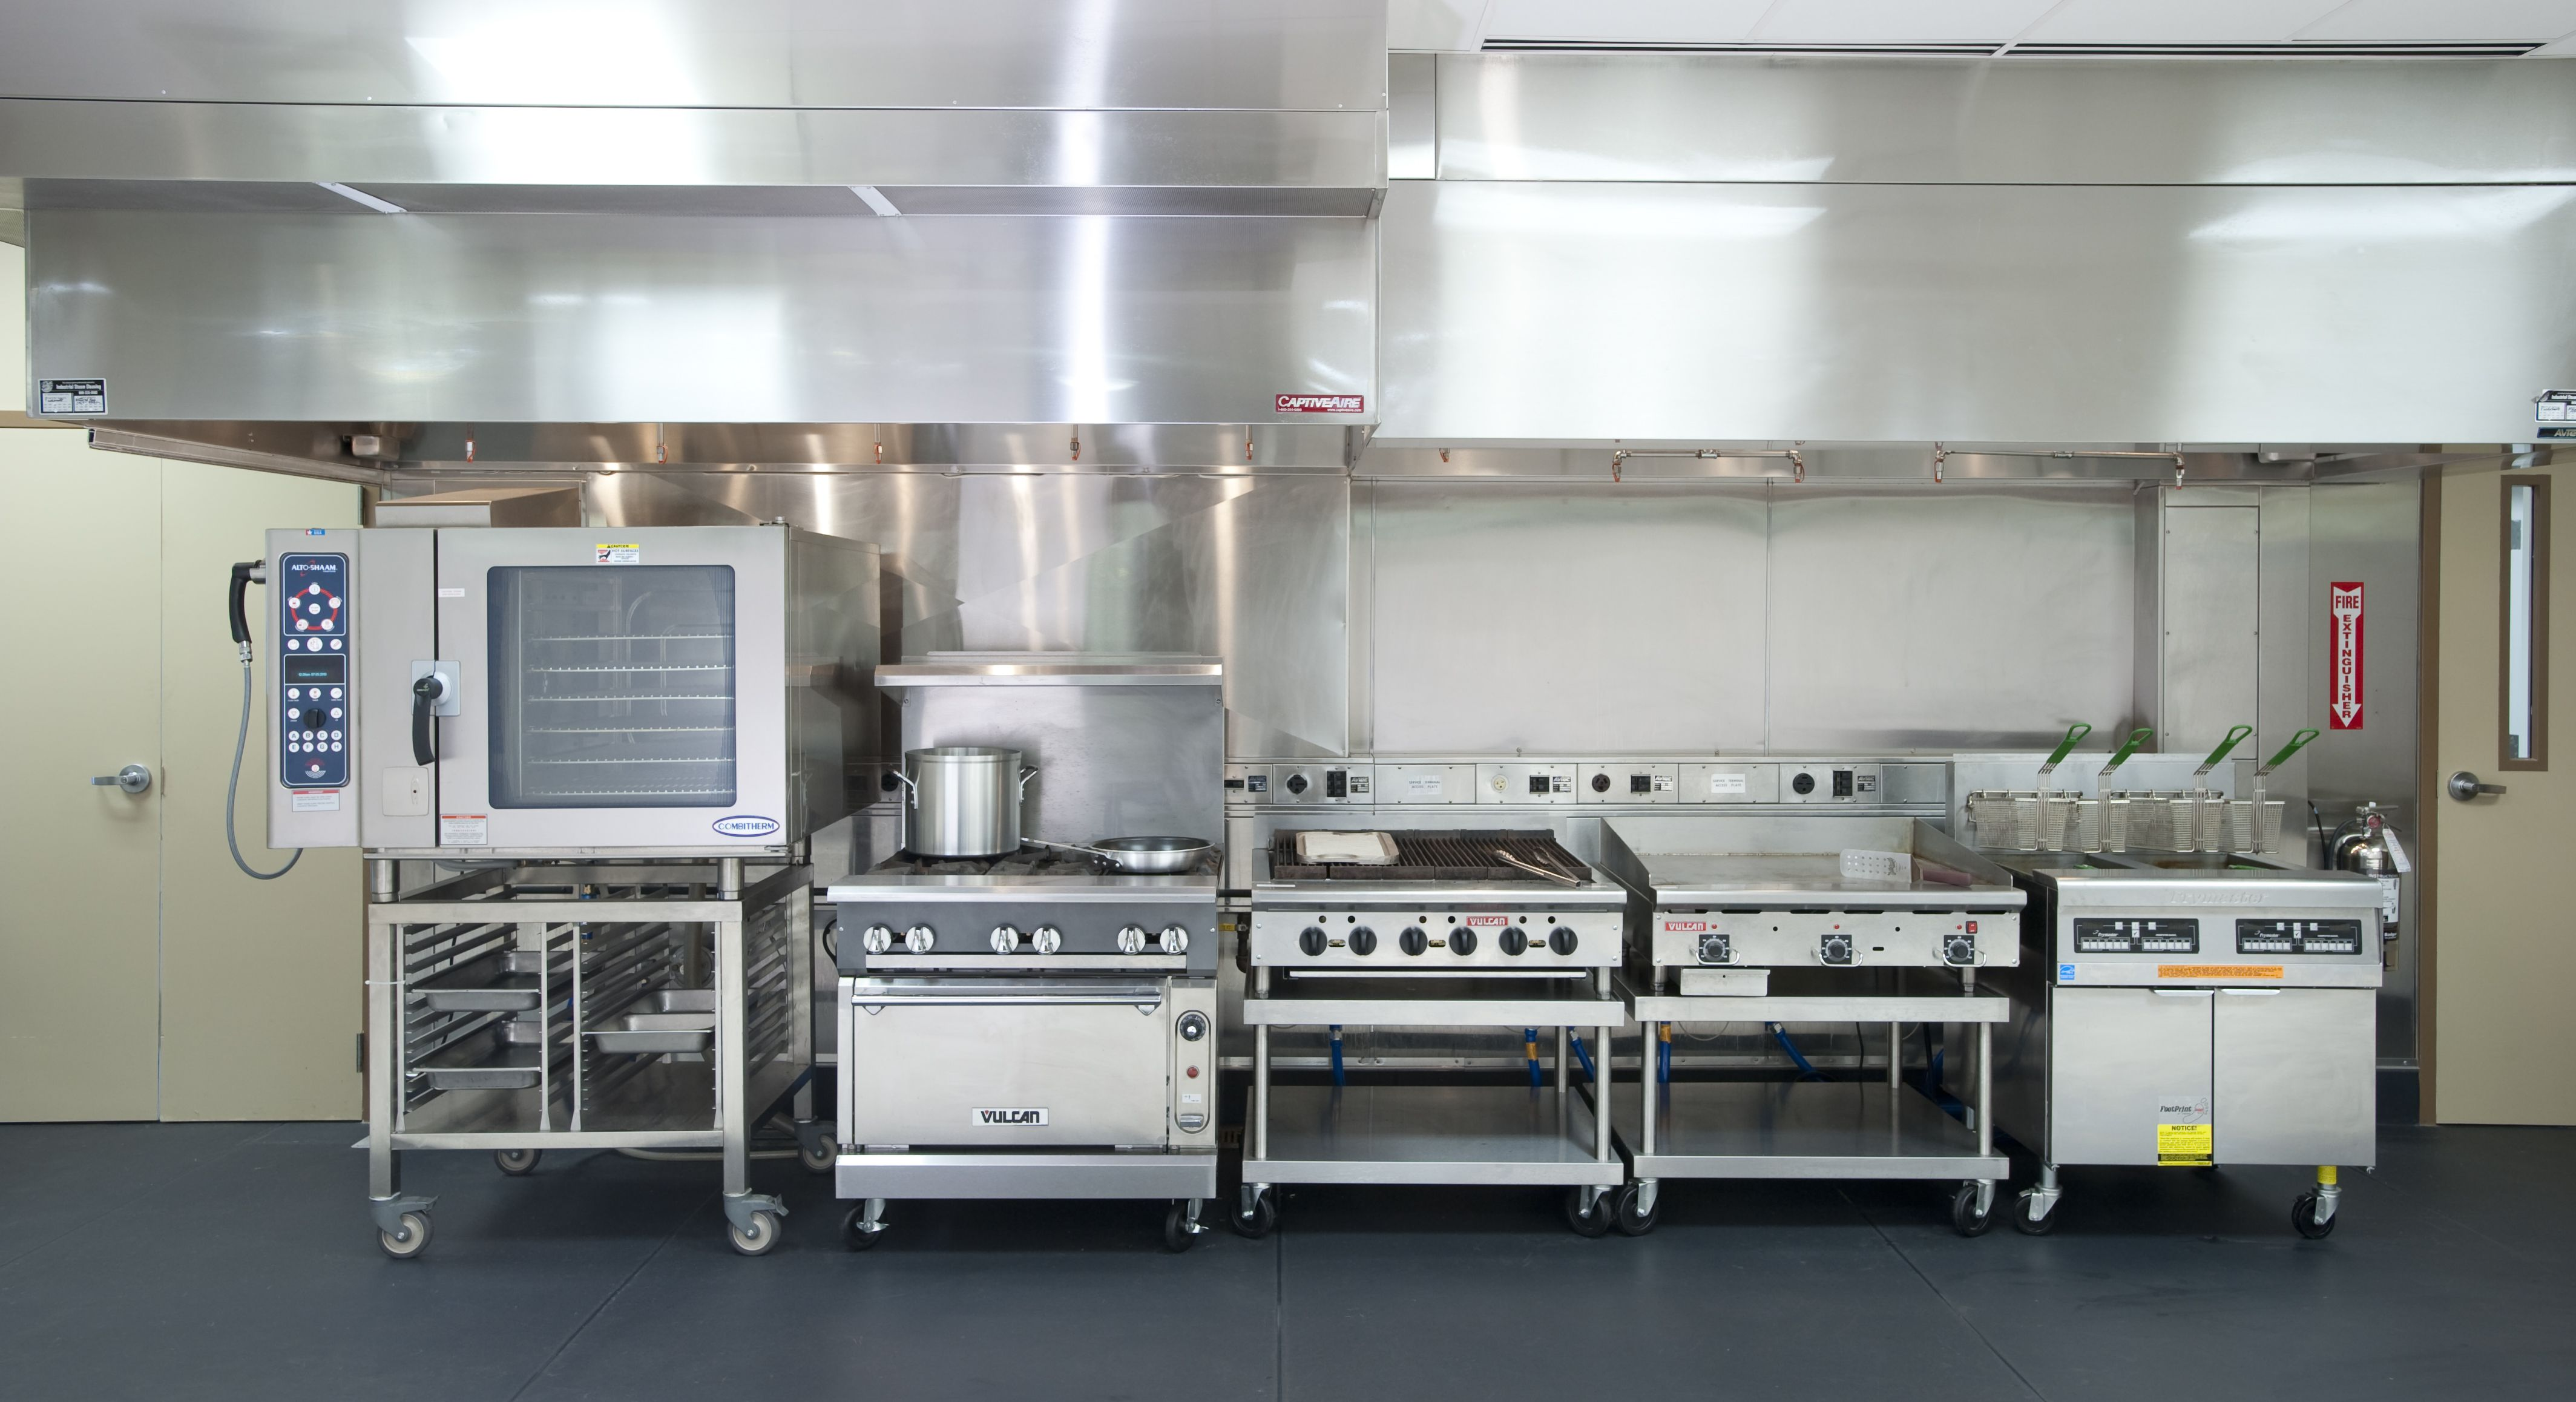 restaurant kitchens  Google Search  Industrial Restaurant Design  Summit  Pinterest